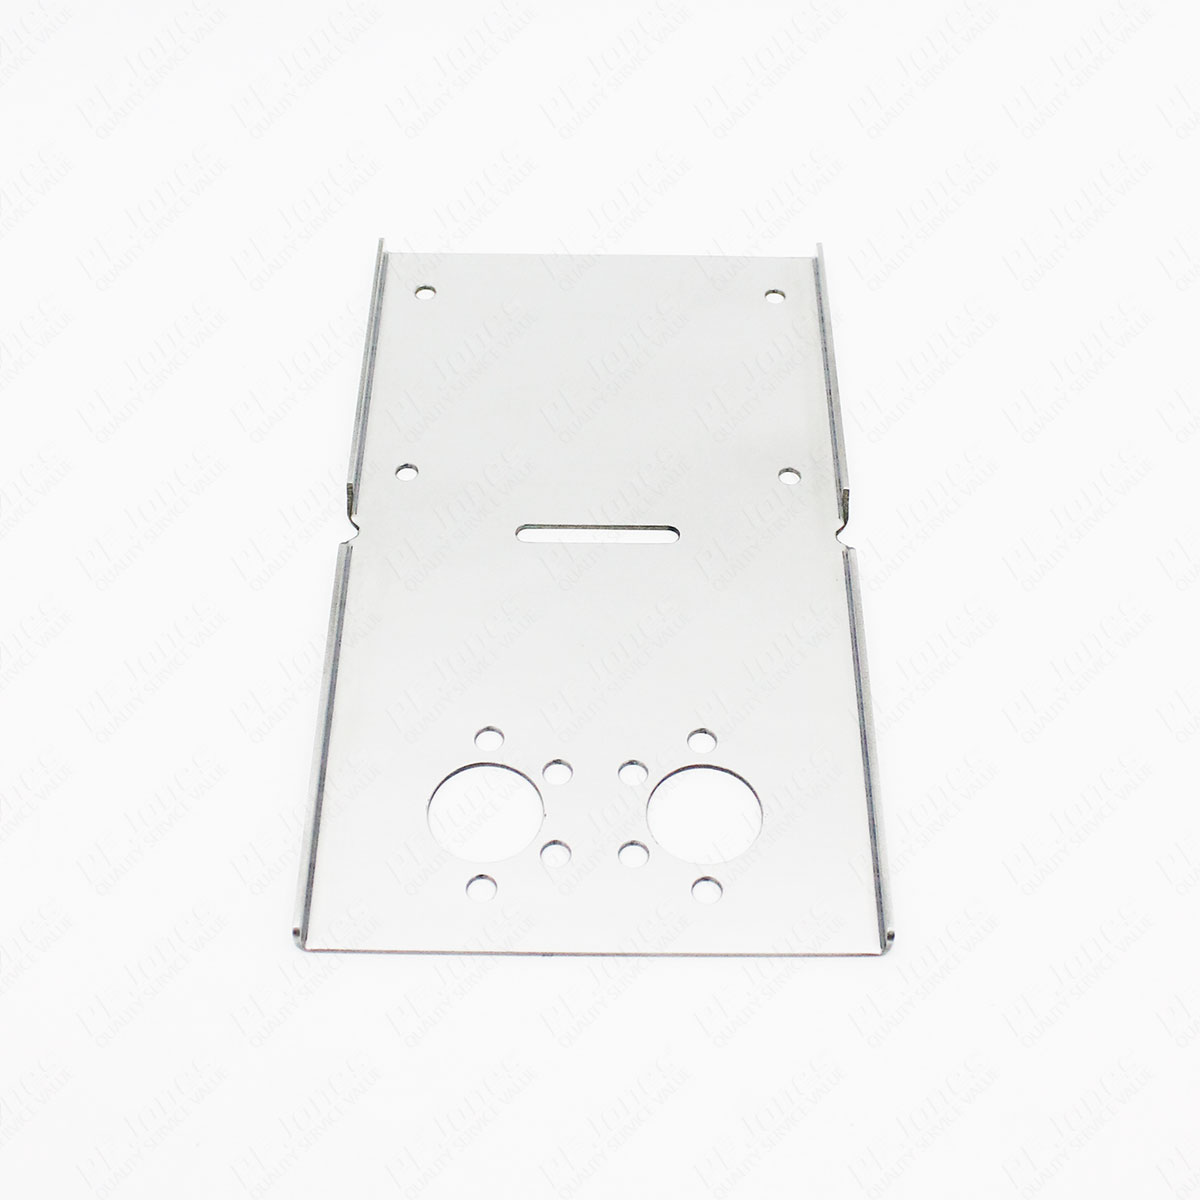 Stainless steel mounting bracket/ plate